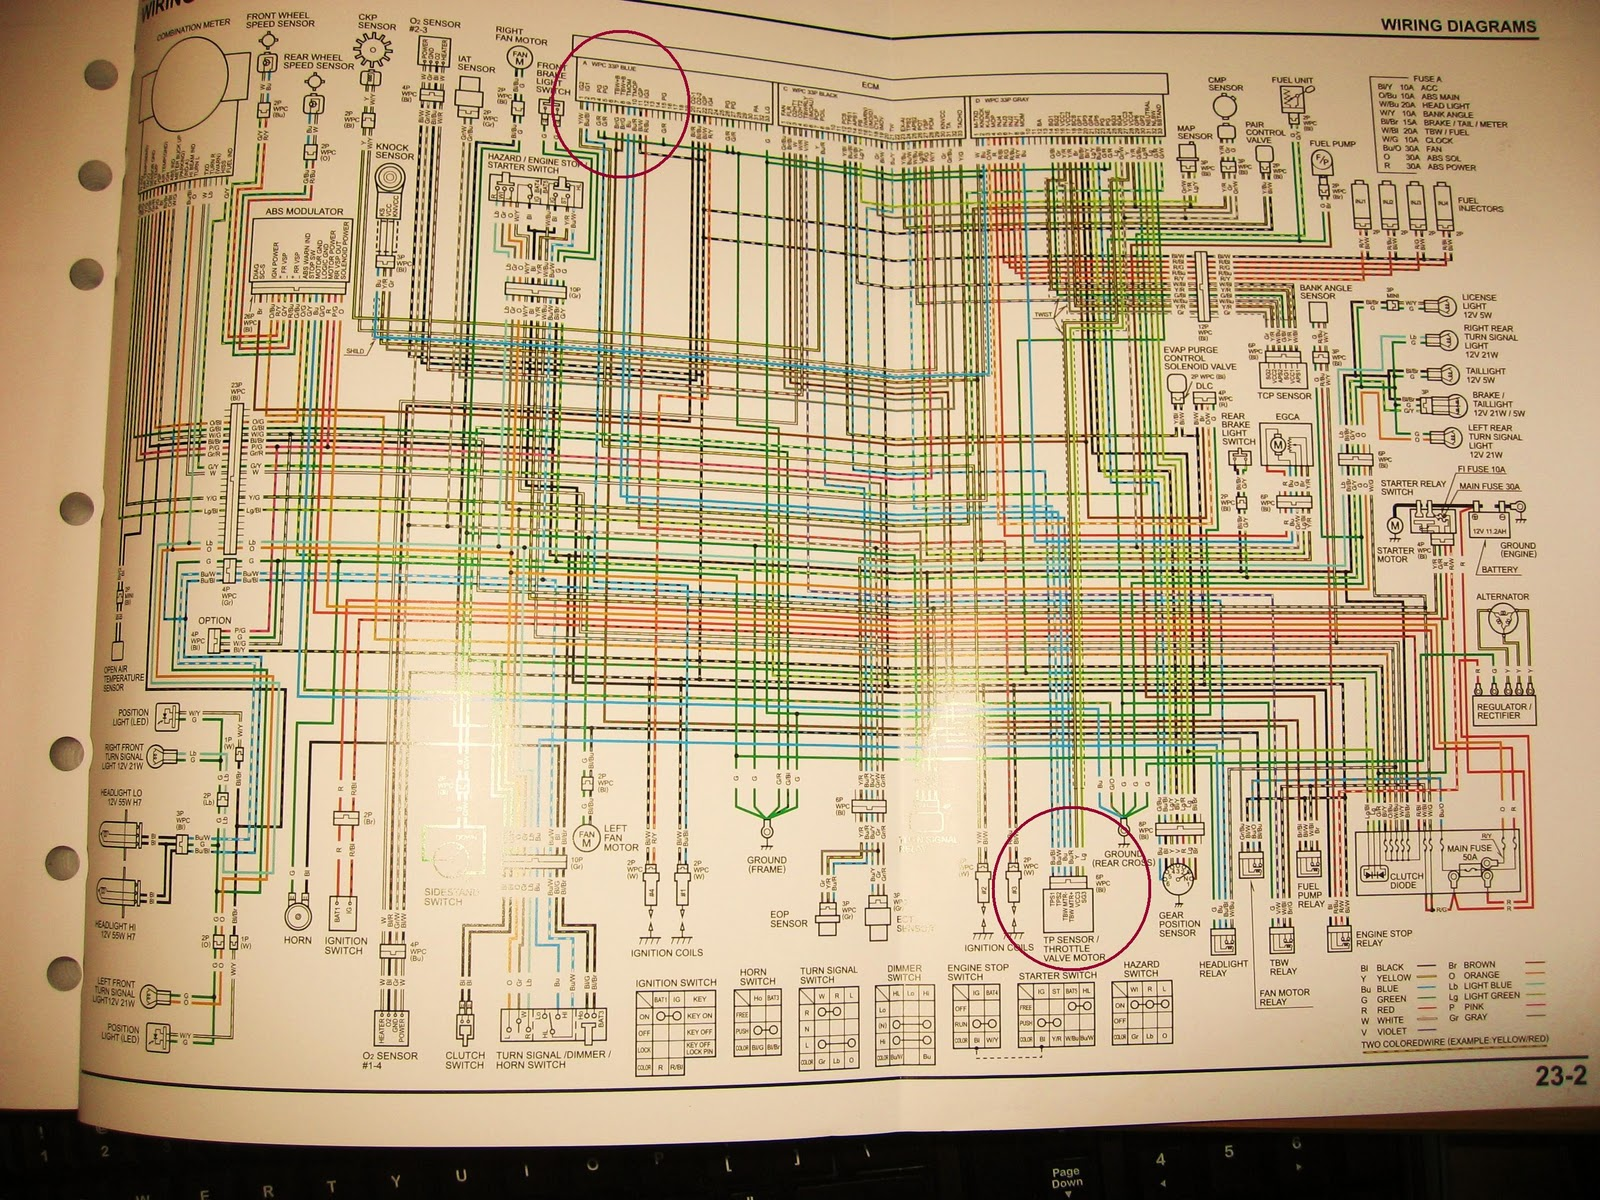 Honda Vfr Wiring Diagram Library Vtr 1000 Edit Tmom And Tmop Appear To Be The Power Supply For Throttle Motor